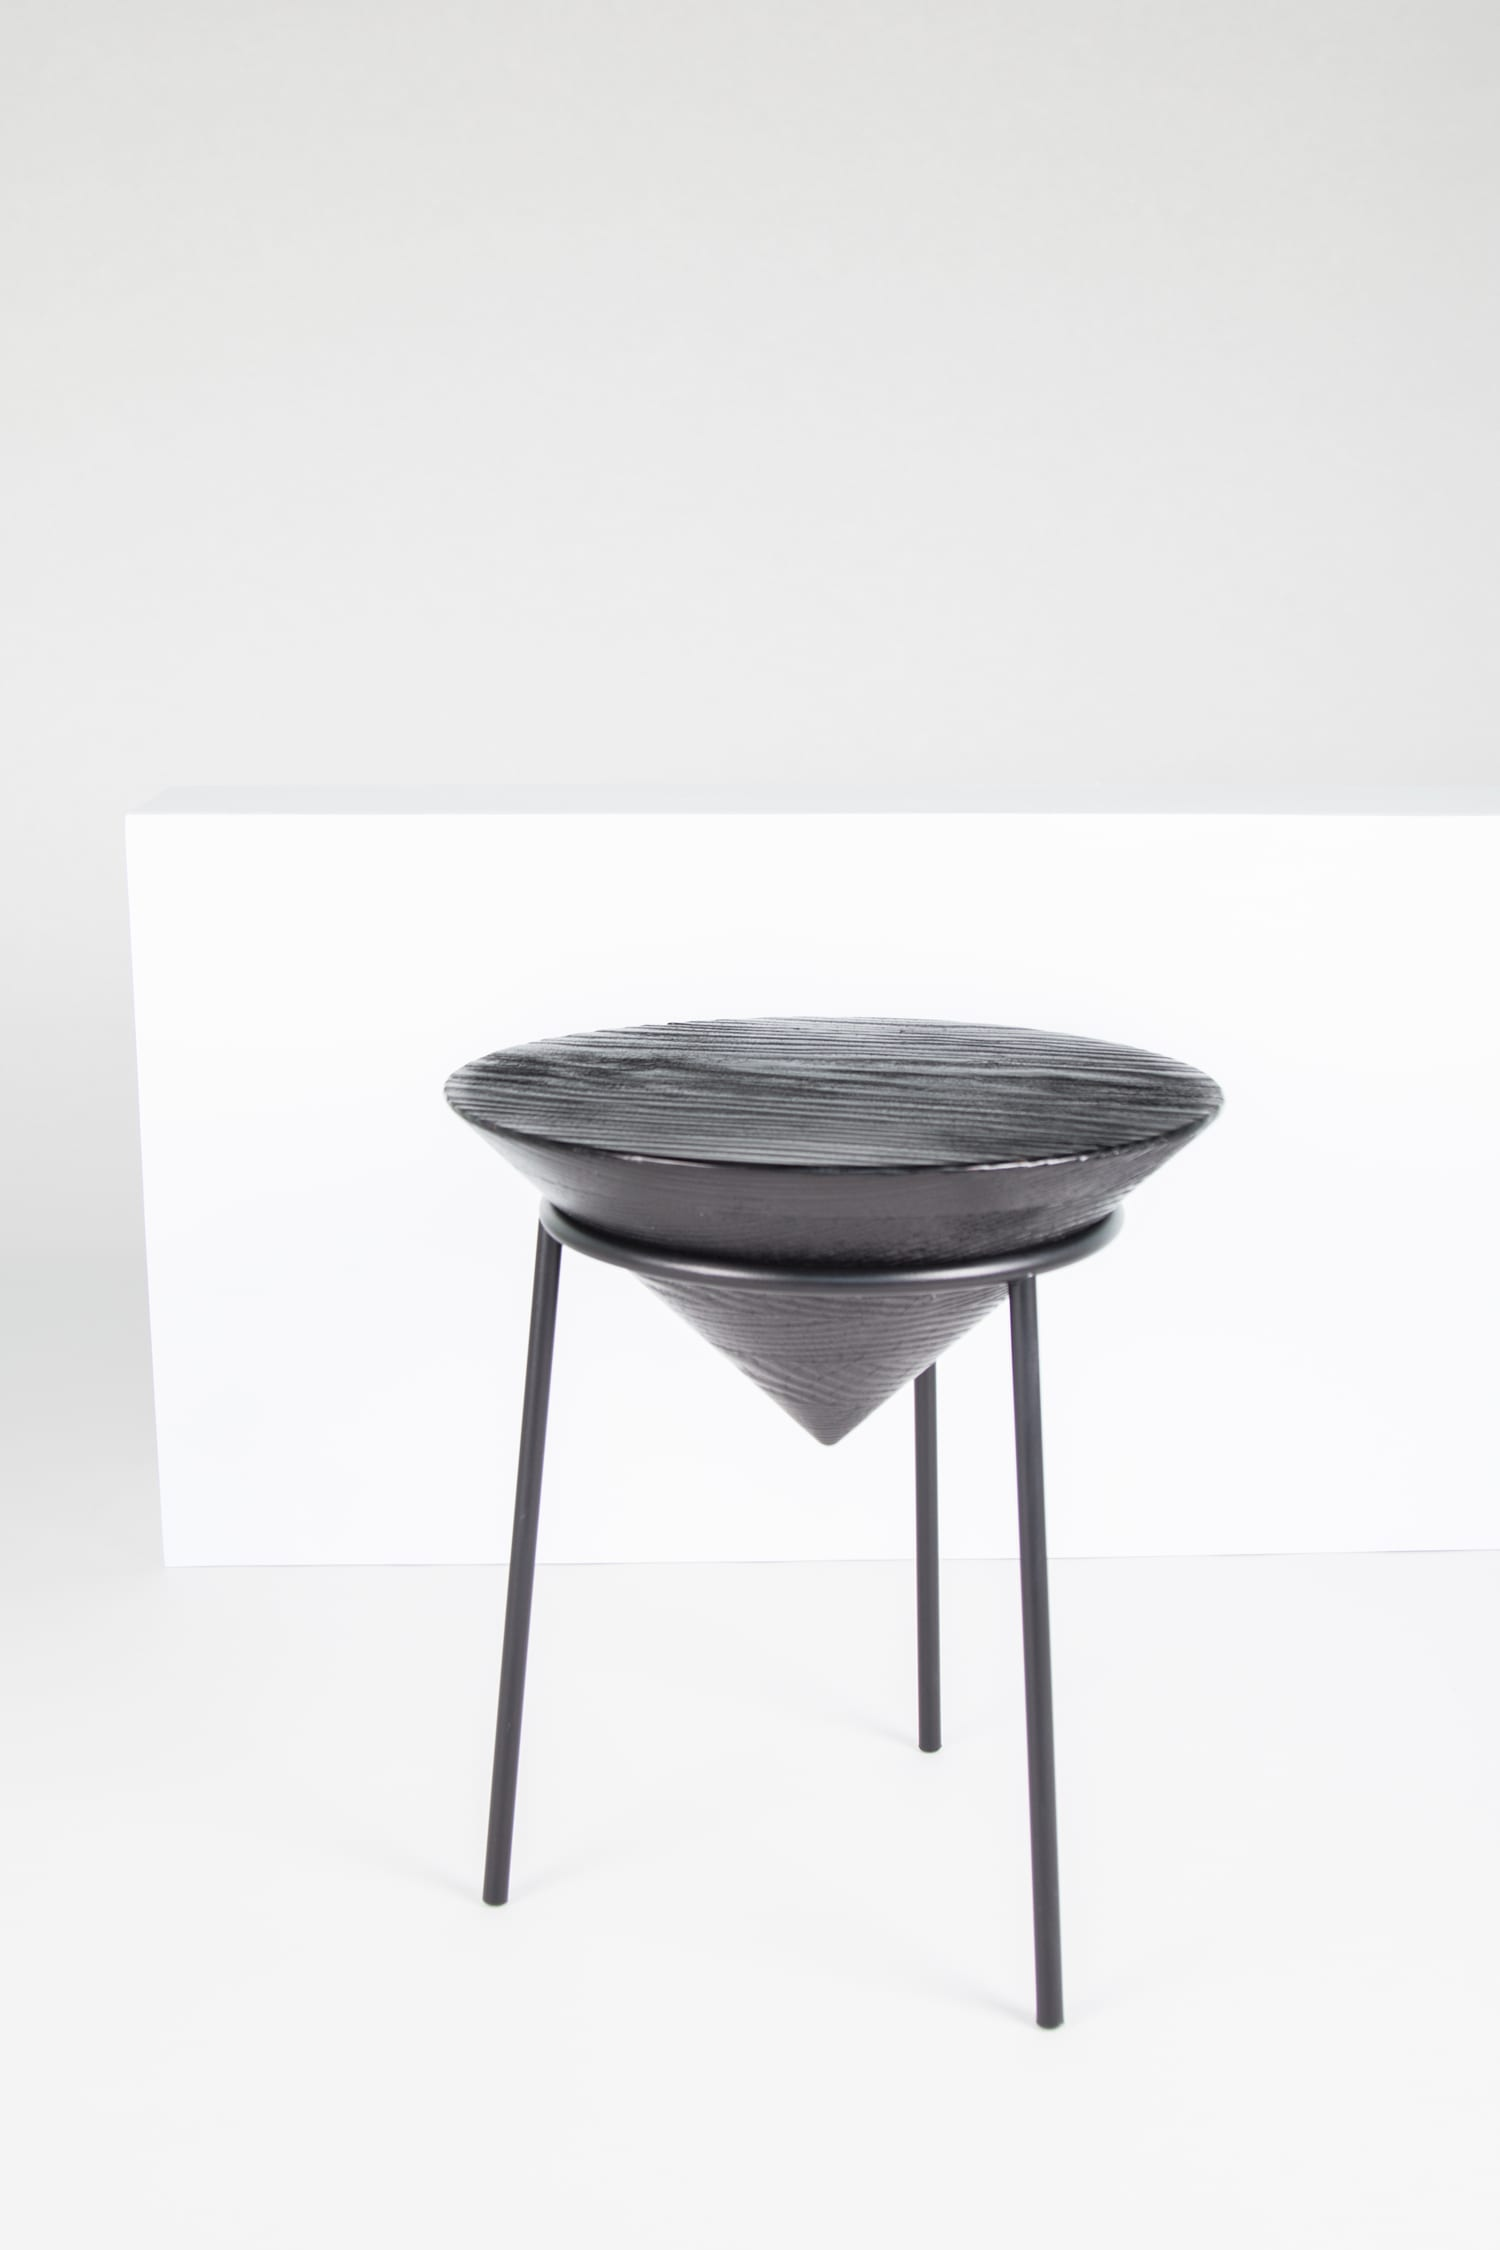 Ember by Troels Flensted at Stockholm Furniture Fair 2018 | Yellowtrace